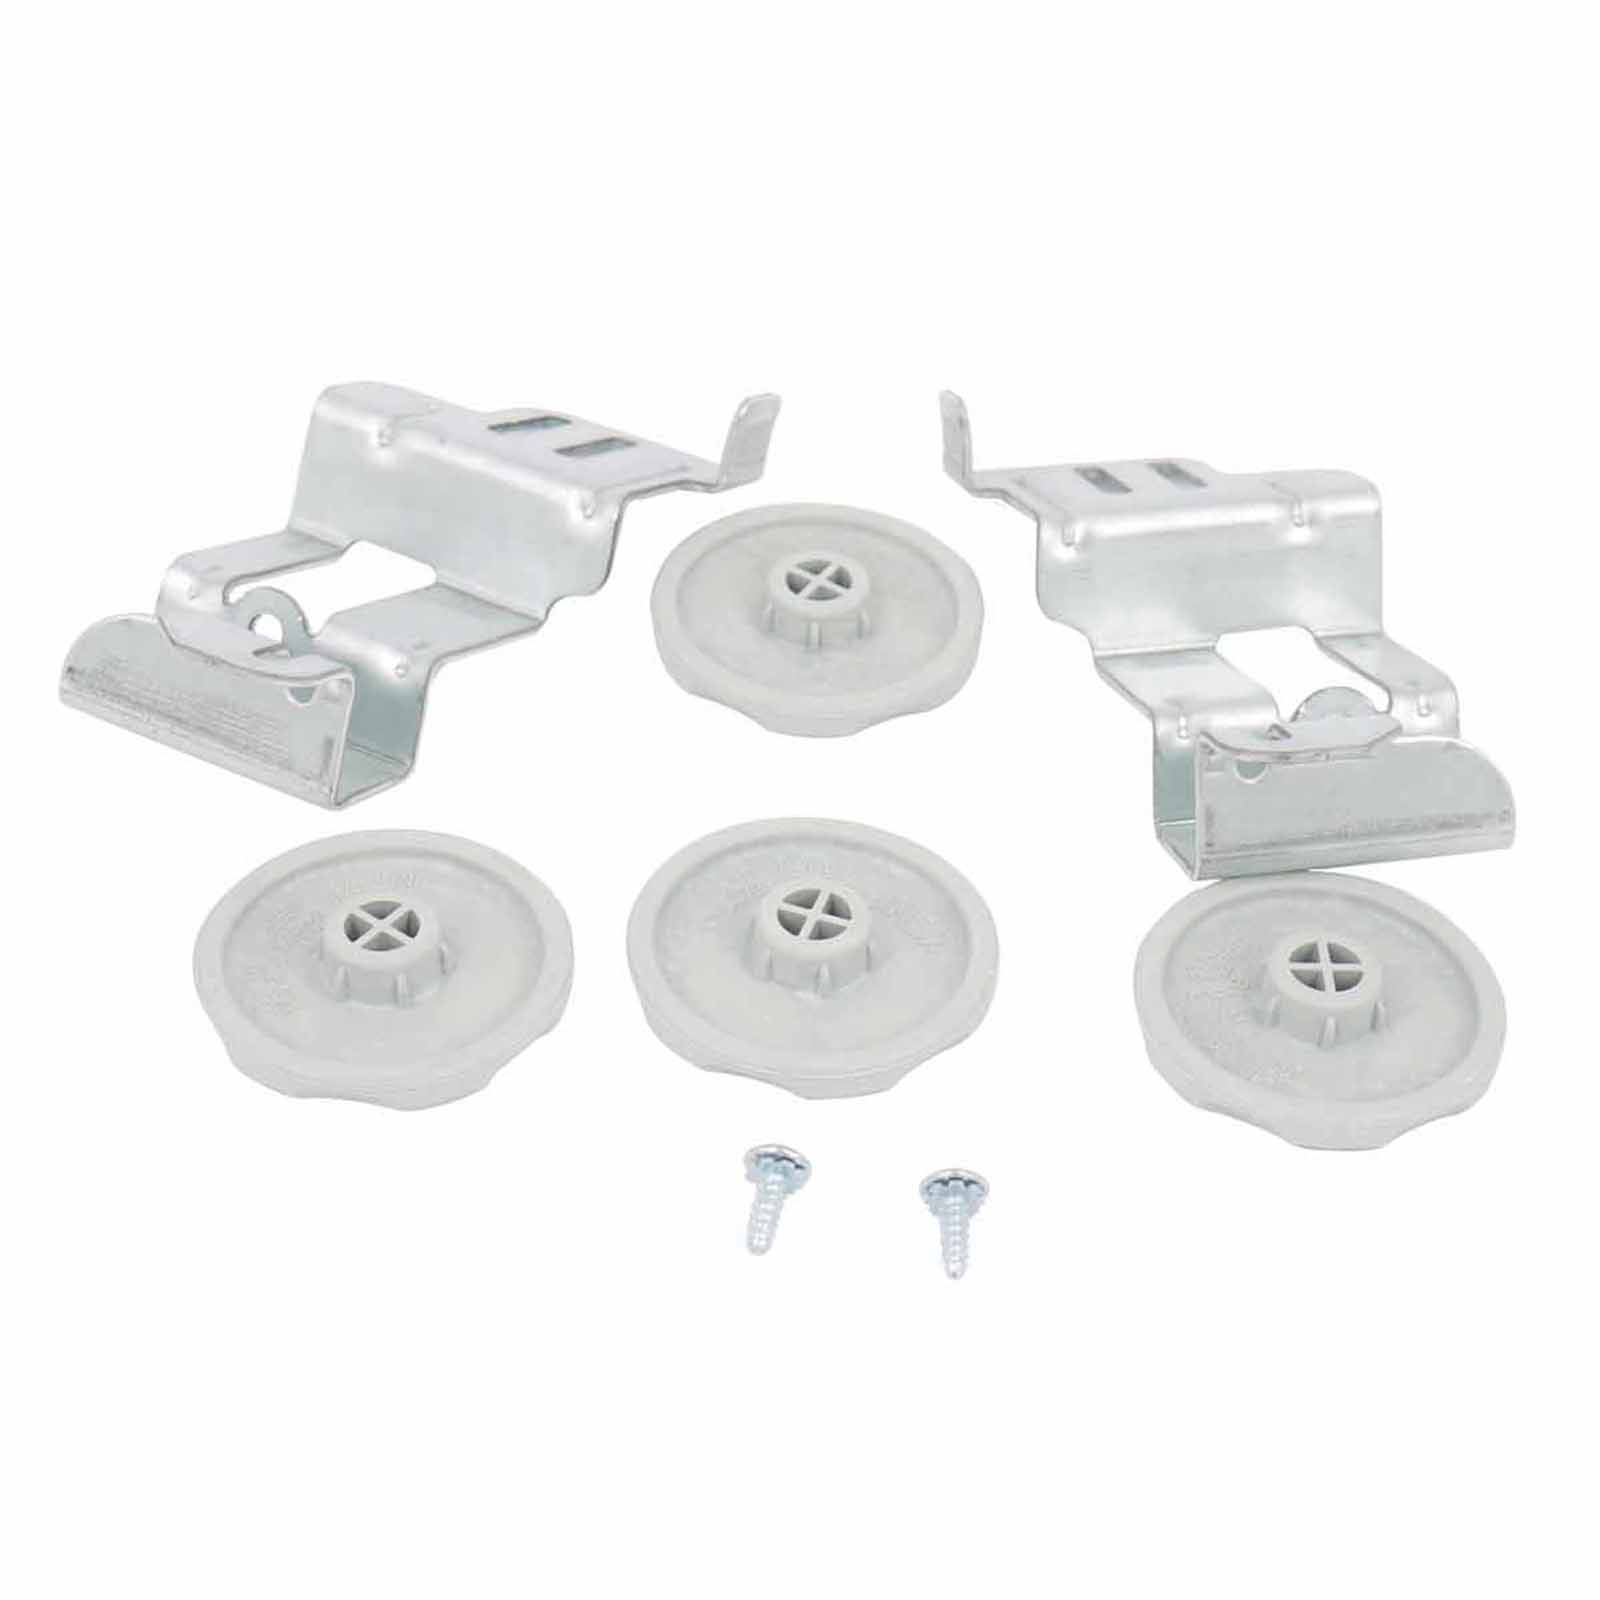 Wasdroger Samsung Samsung Stacking Kit Sk Dh For Washer Tumble Dryer